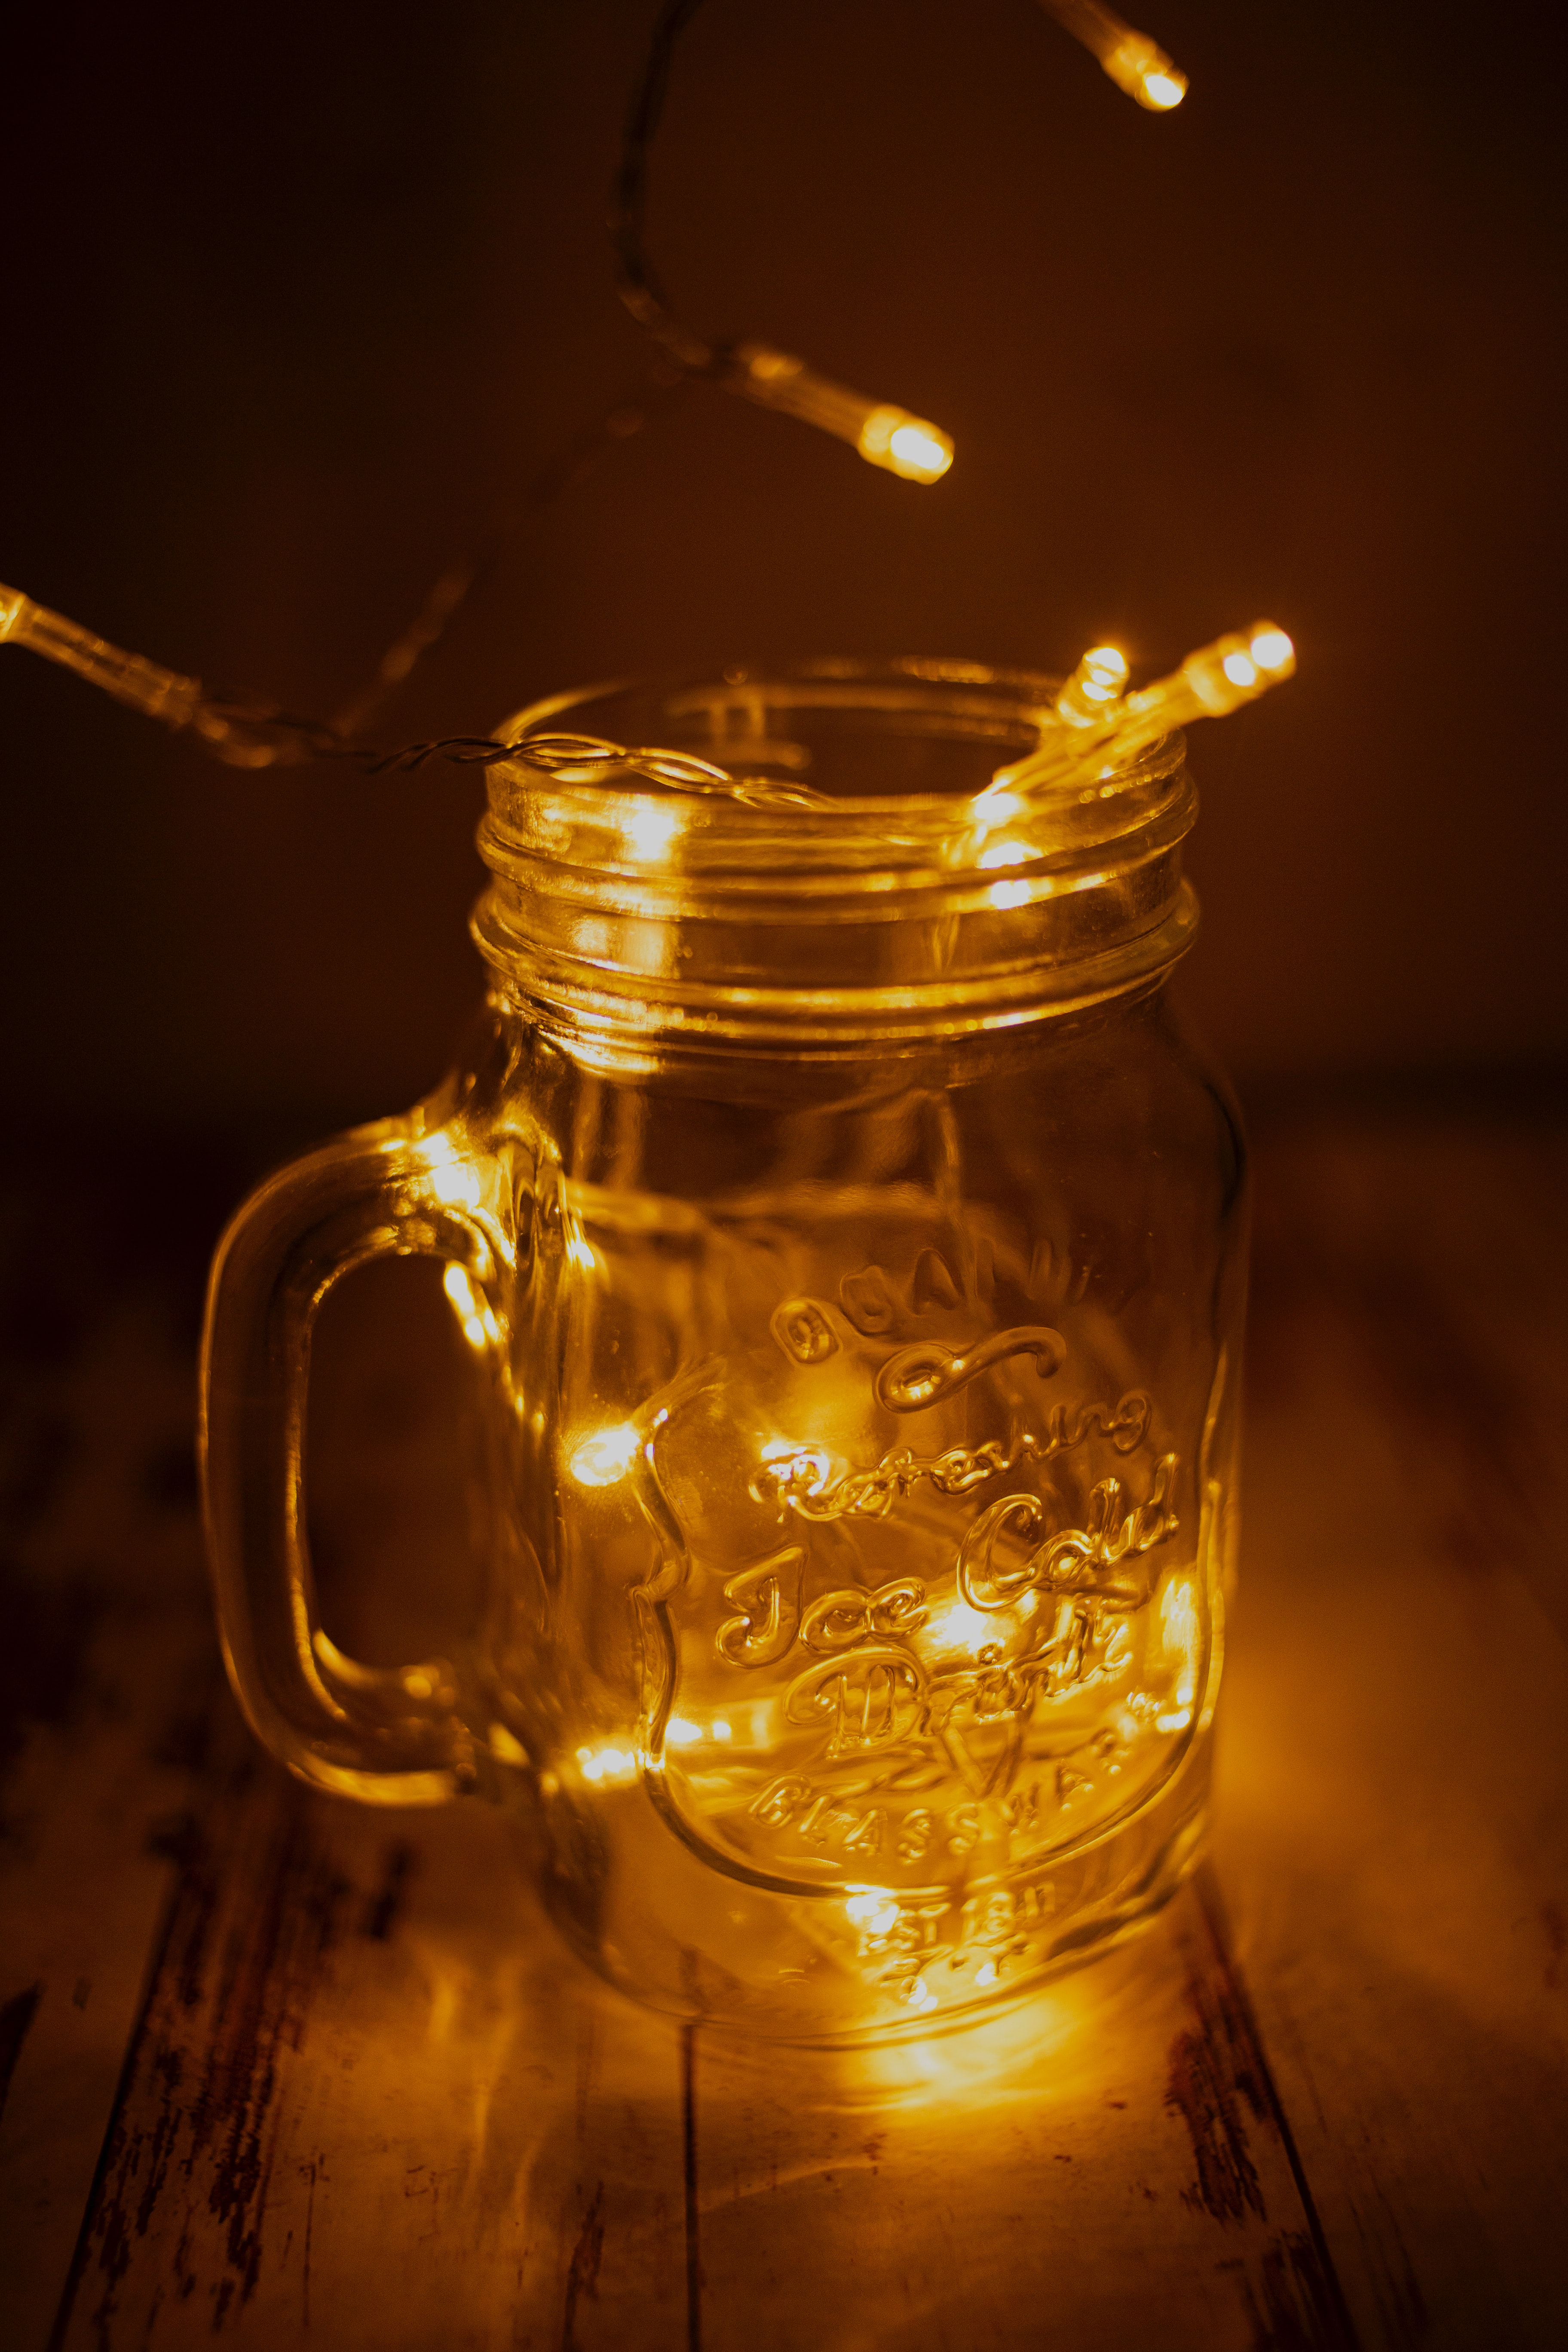 130326 Screensavers and Wallpapers Cup for phone. Download Shine, Light, Miscellanea, Miscellaneous, Cup, Glow, Garland, Mug pictures for free